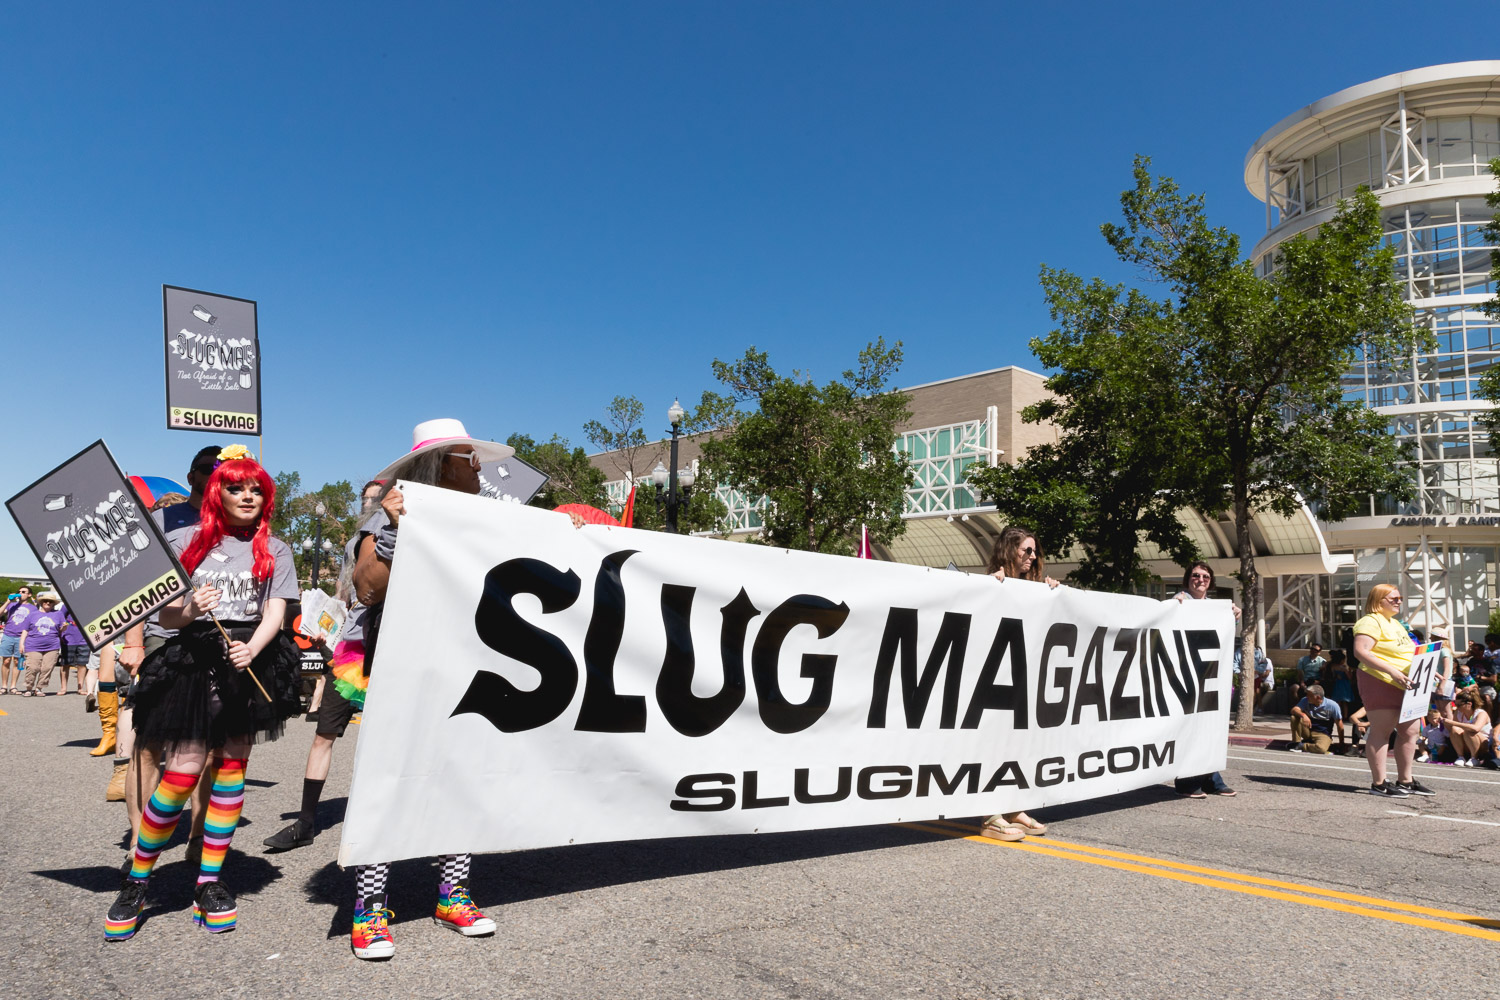 SLUG Magazine crew carry the banner throughout the whole parade as a show of love and support for SLC Pride. Photo: Logan Sorenson | Lmsorenson.net